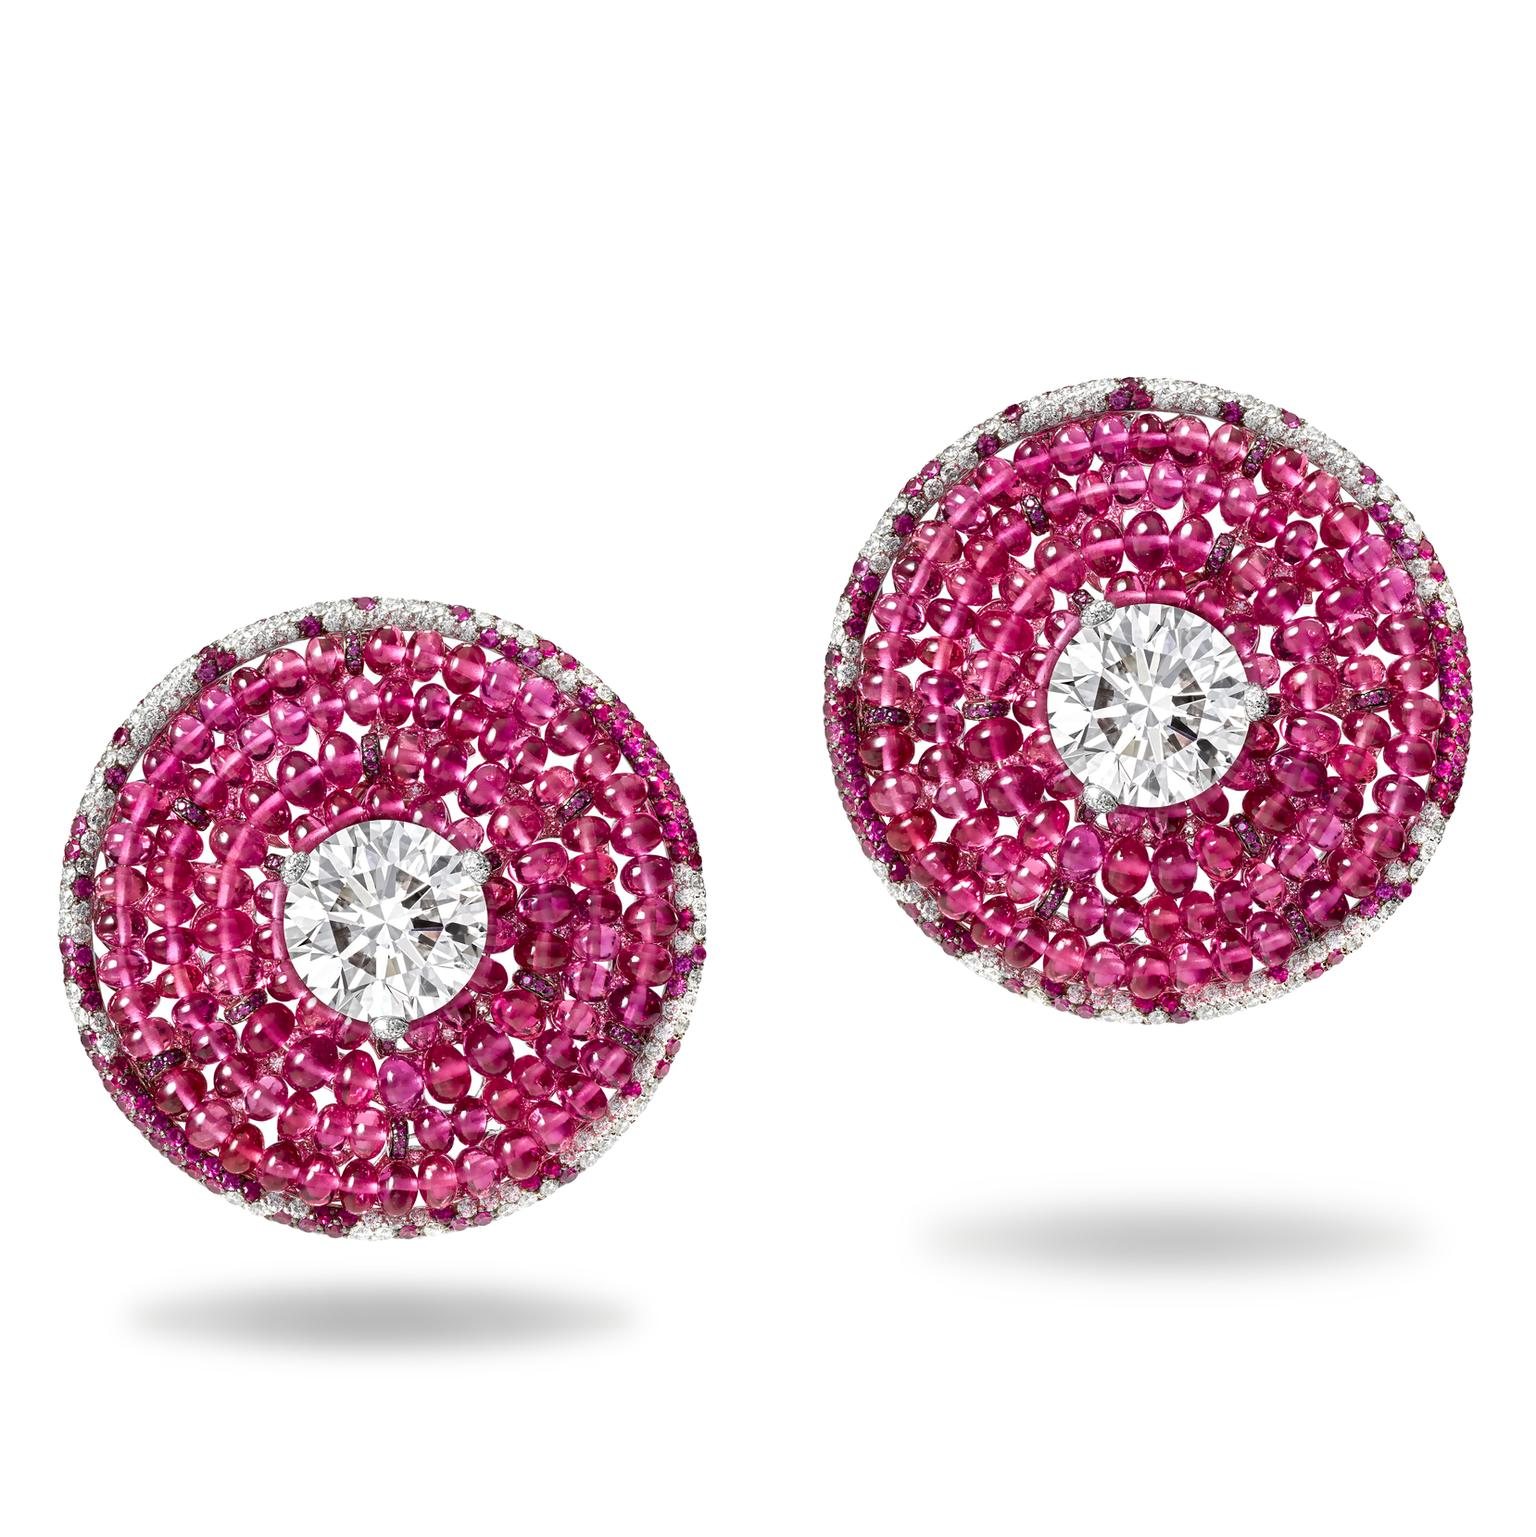 de GRISOGONO Love on the Rocks earrings